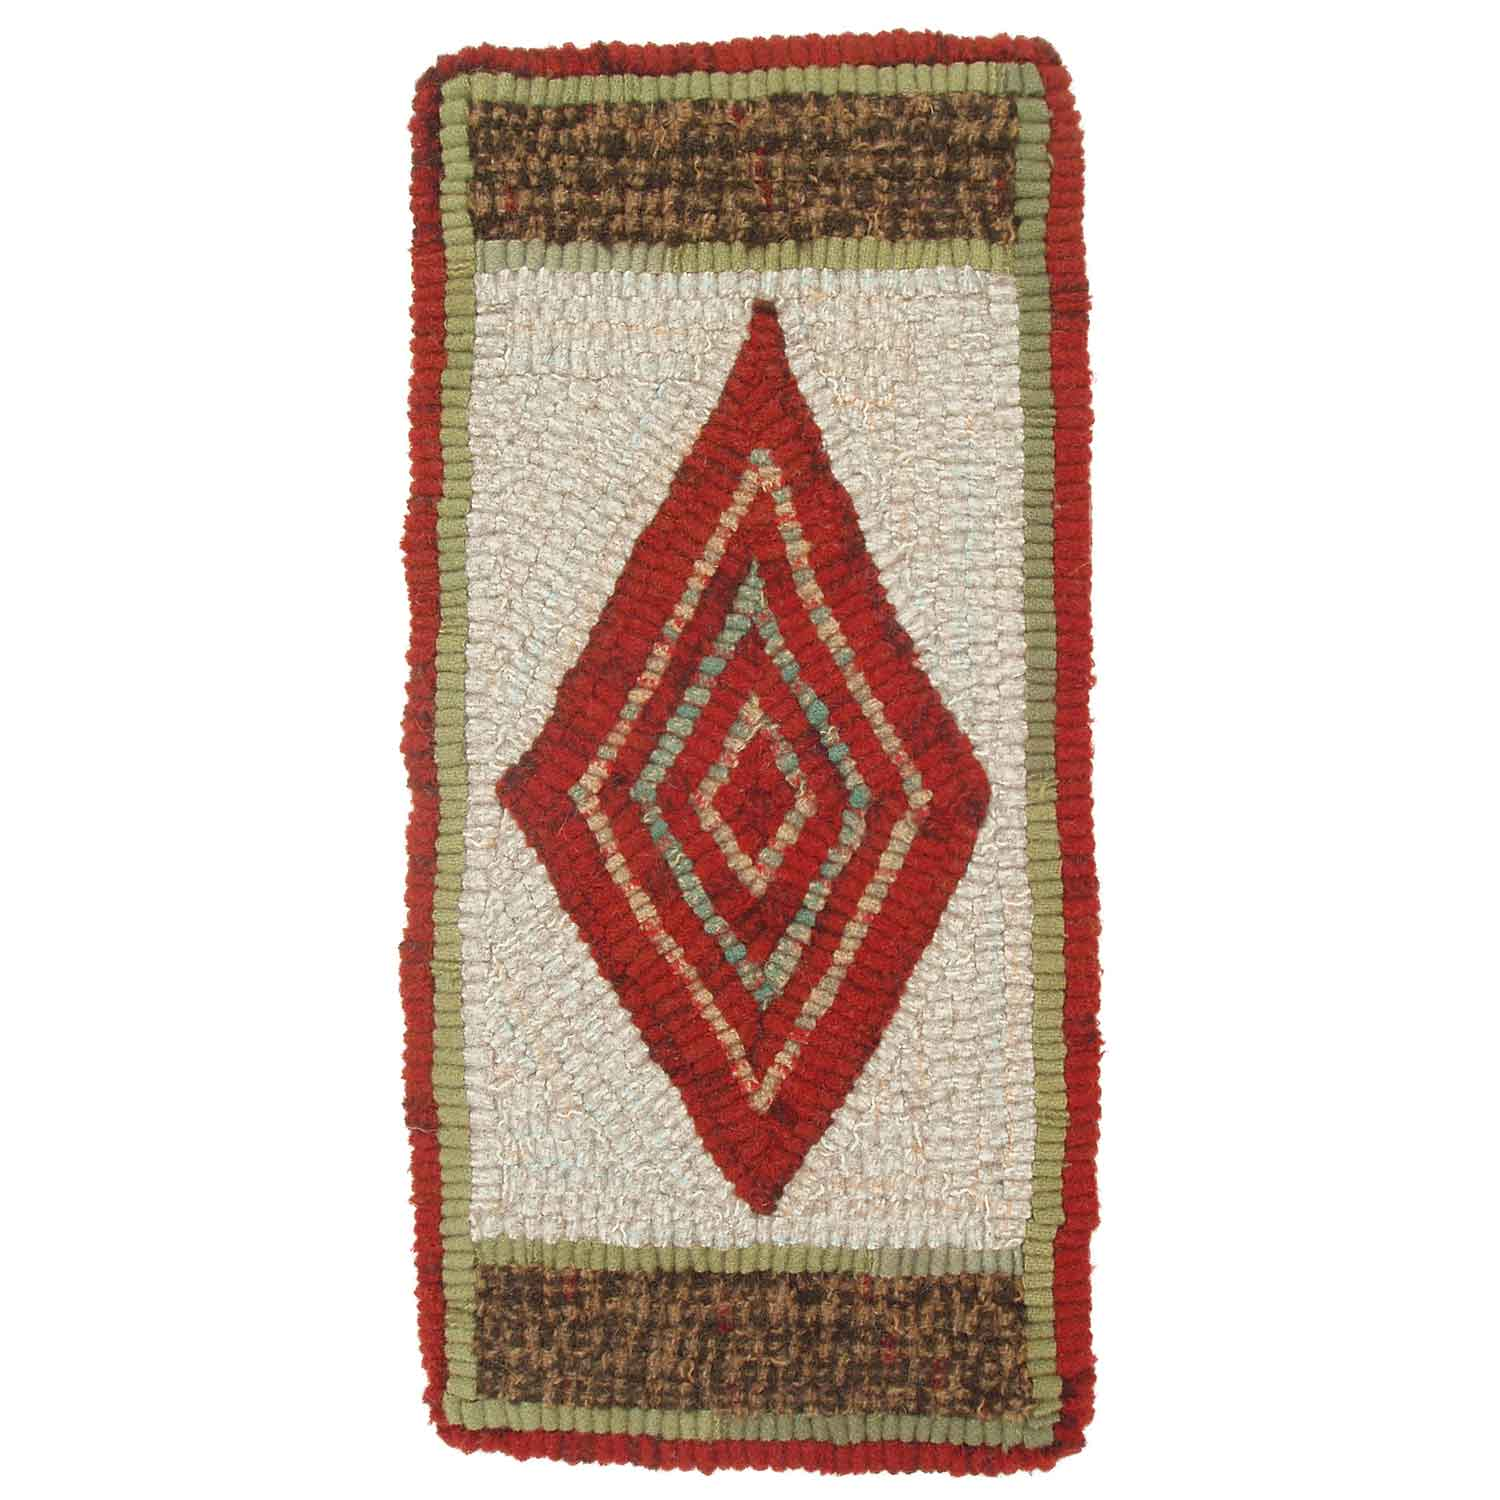 Small Red Diamond Hooked Rug Ornament